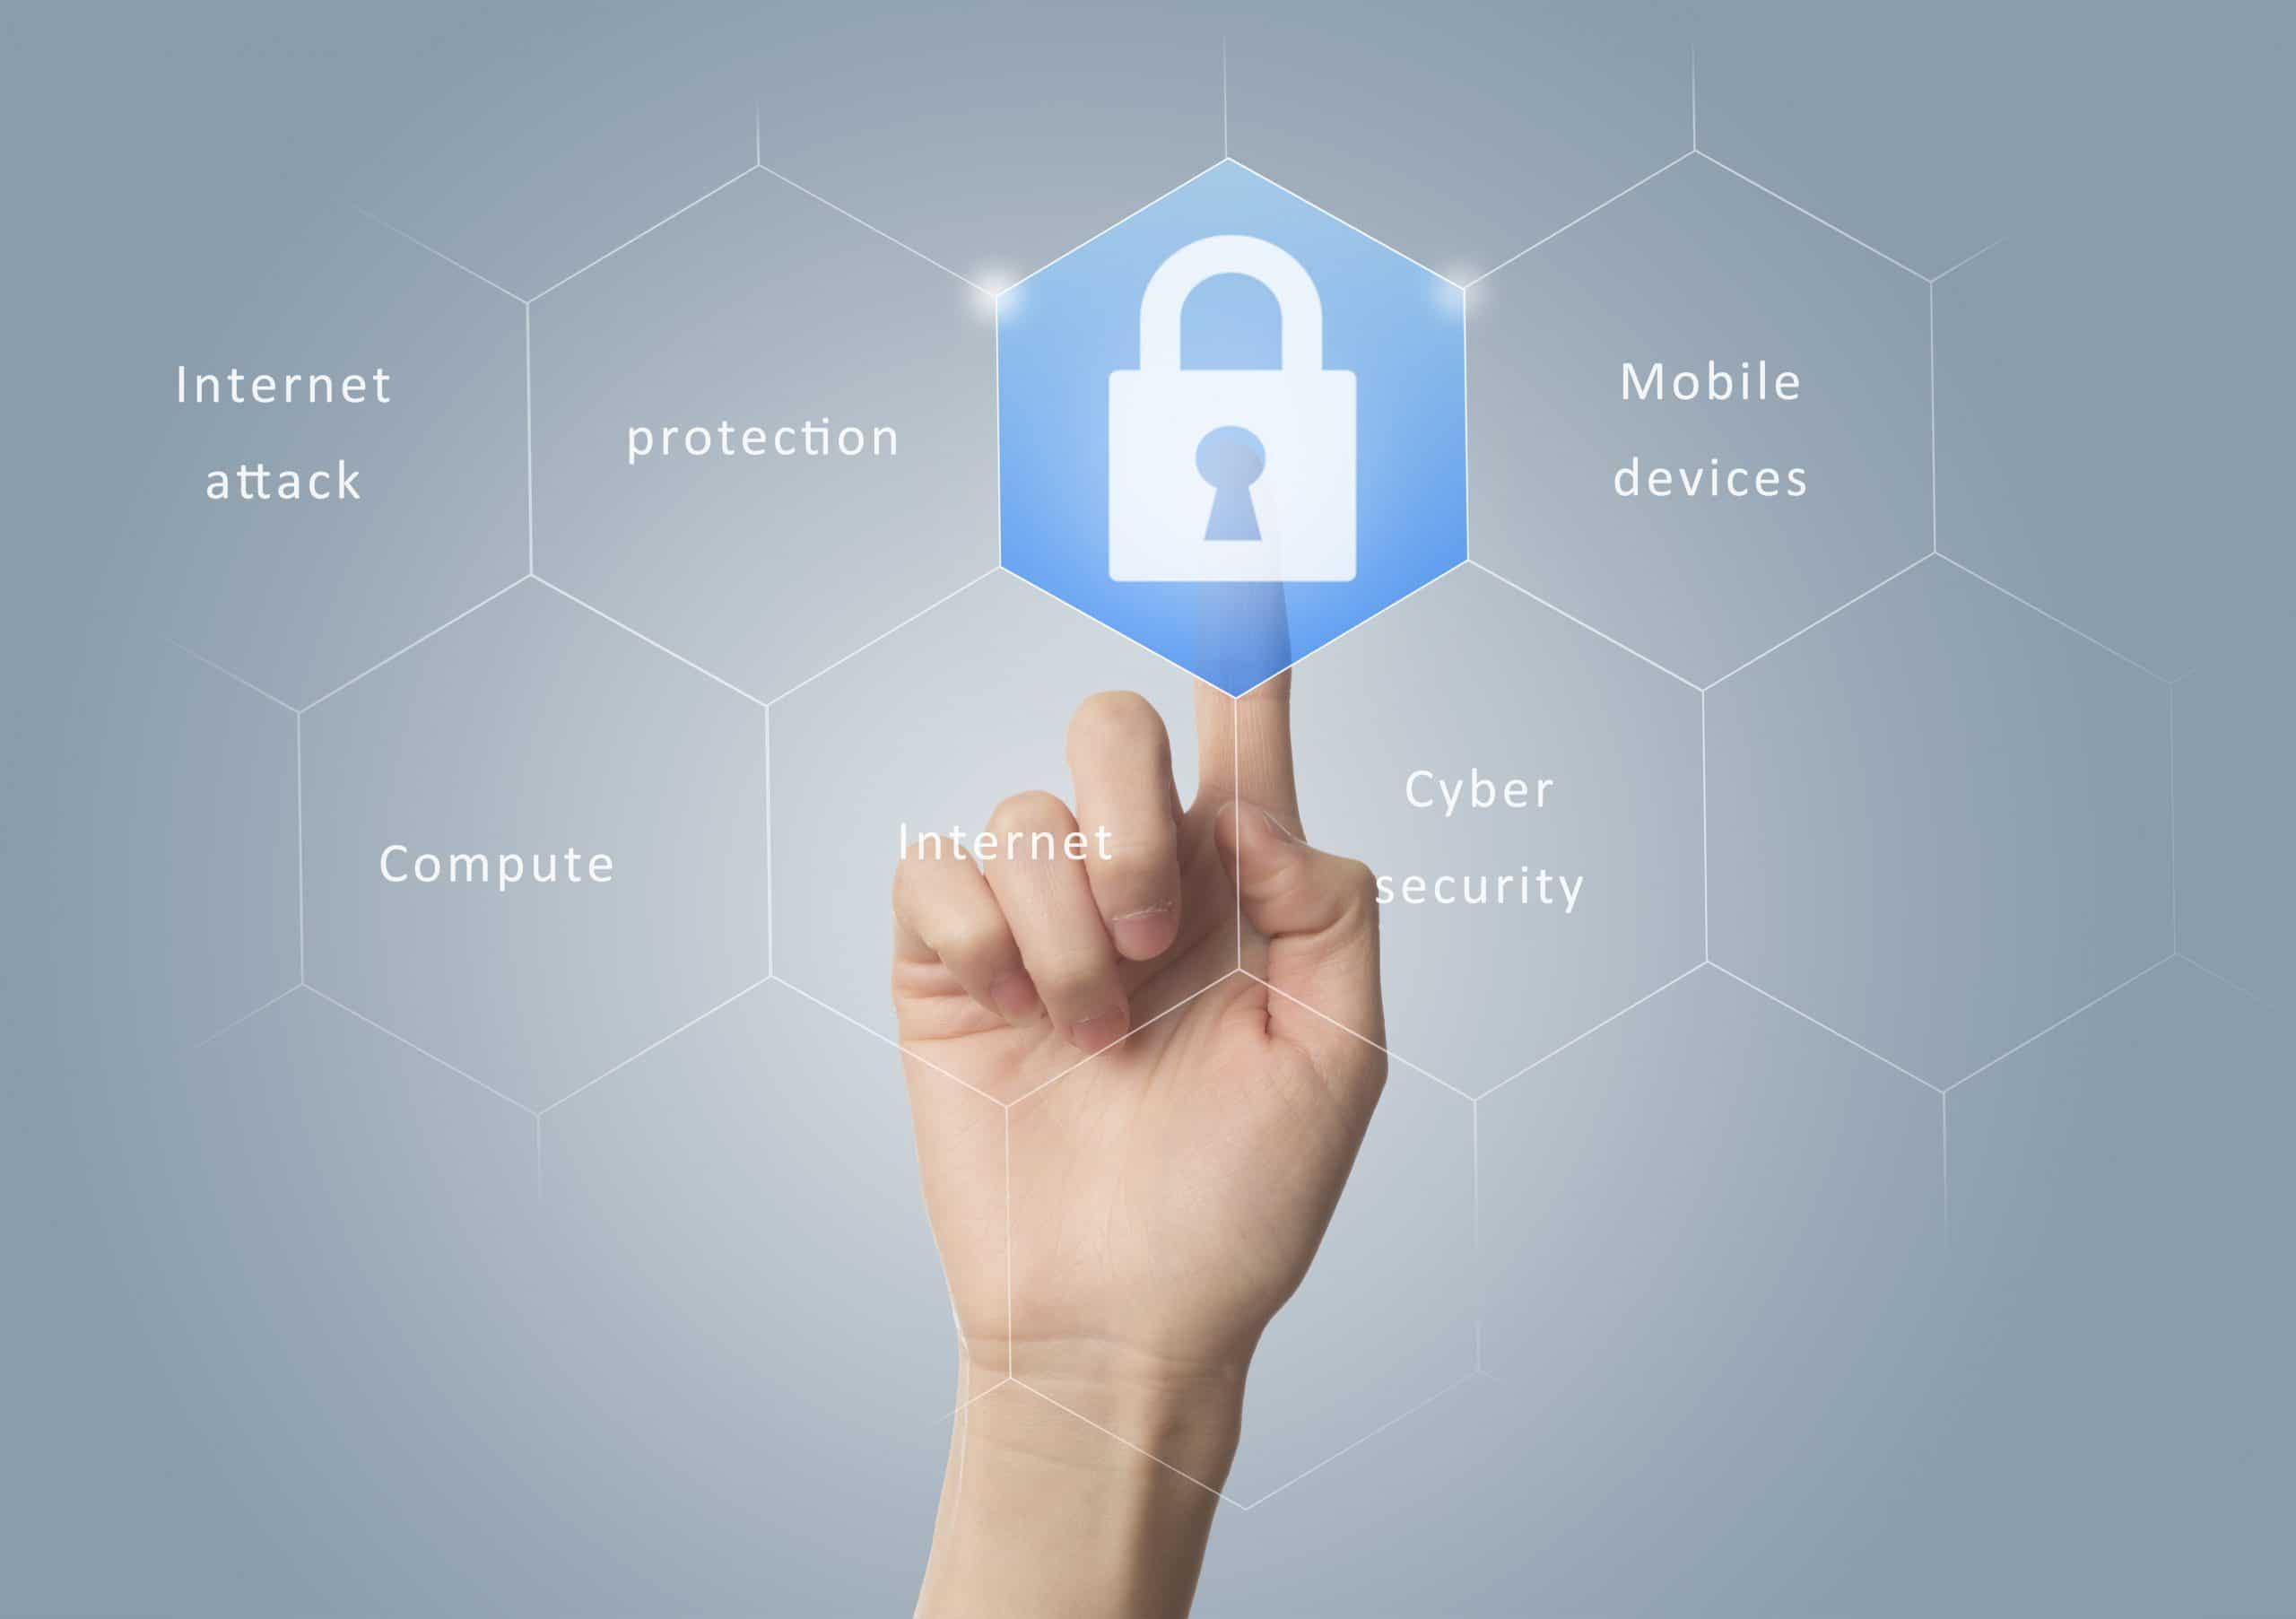 Improve your cloud security with Microsoft Enterprise Mobility and Security (EMS)